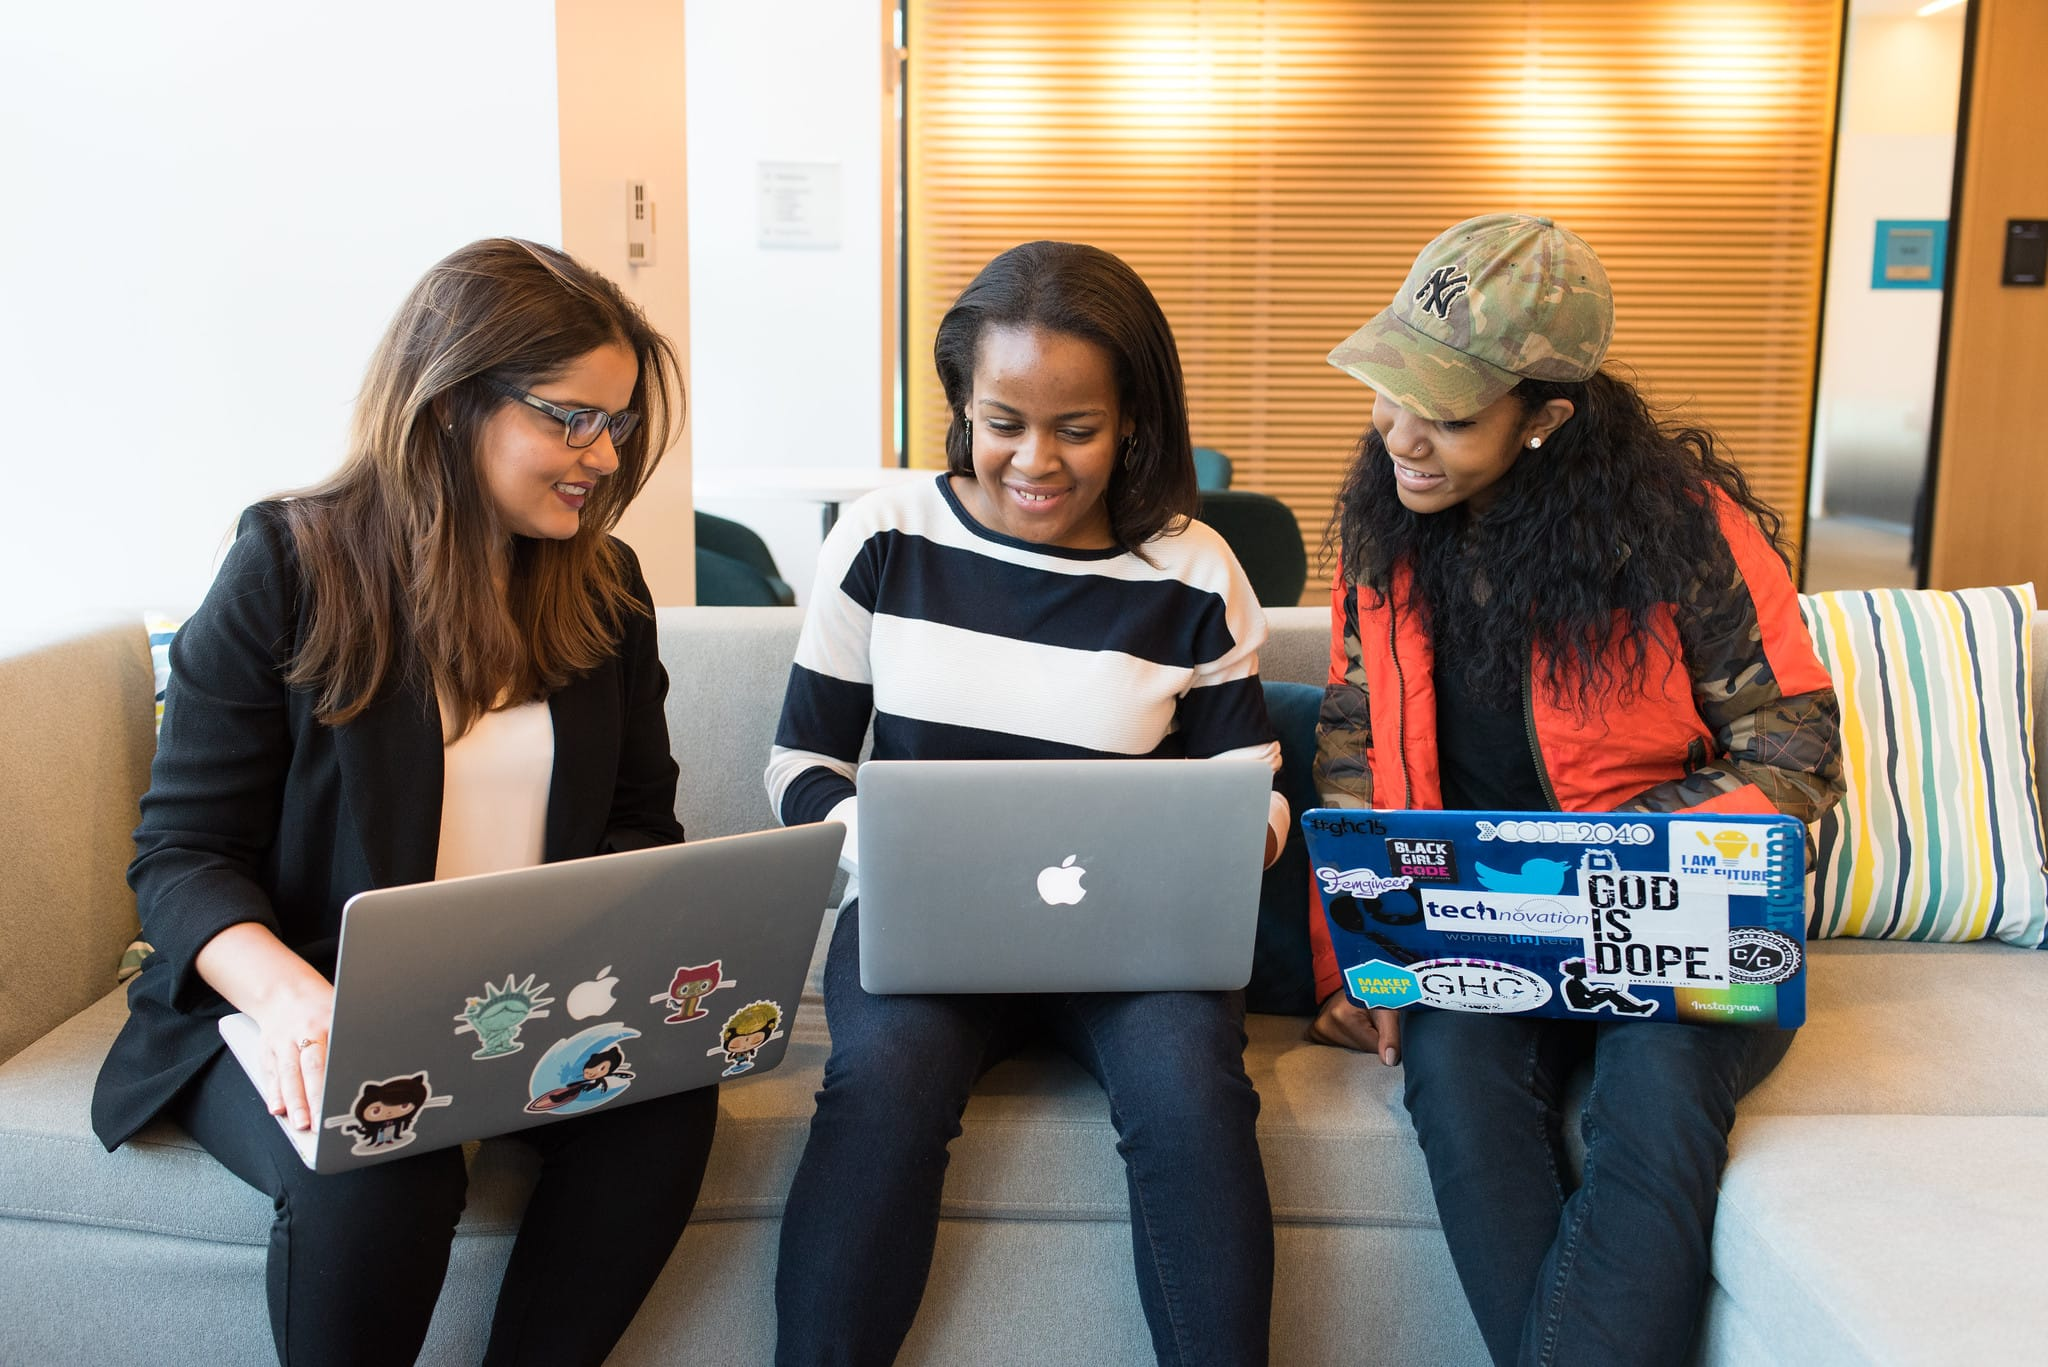 Group of women looking at a laptop